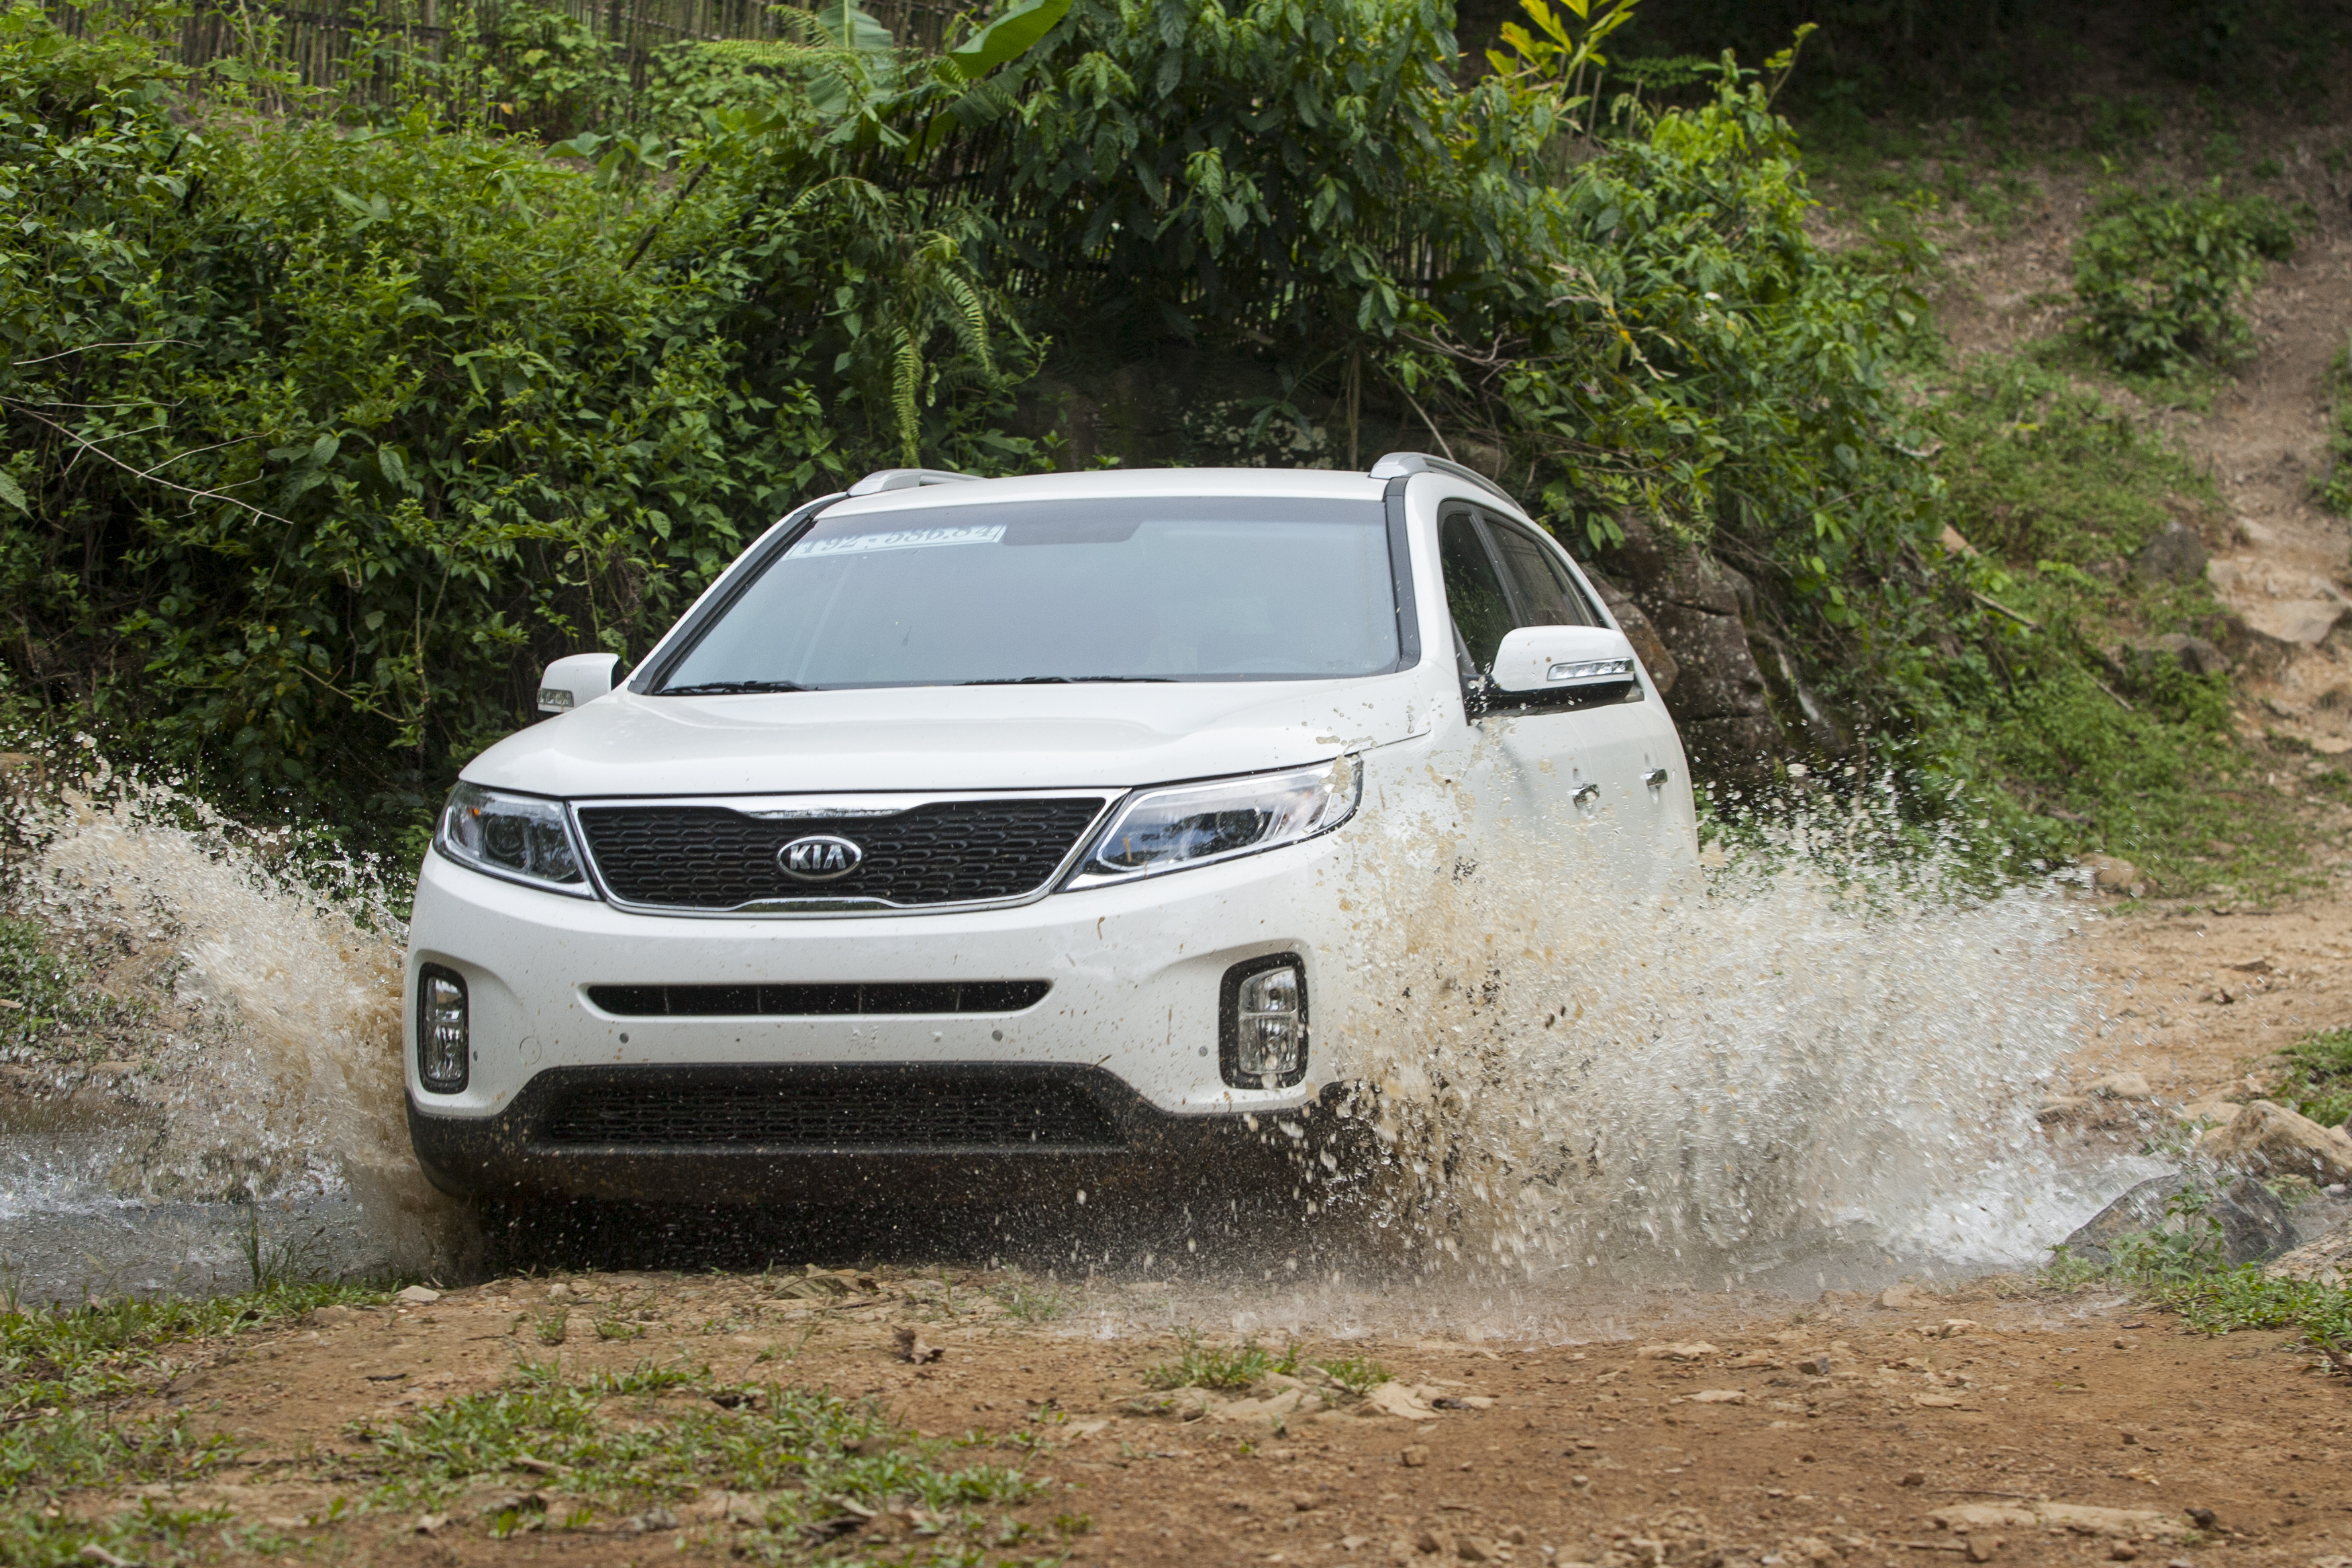 kia sorento in mud